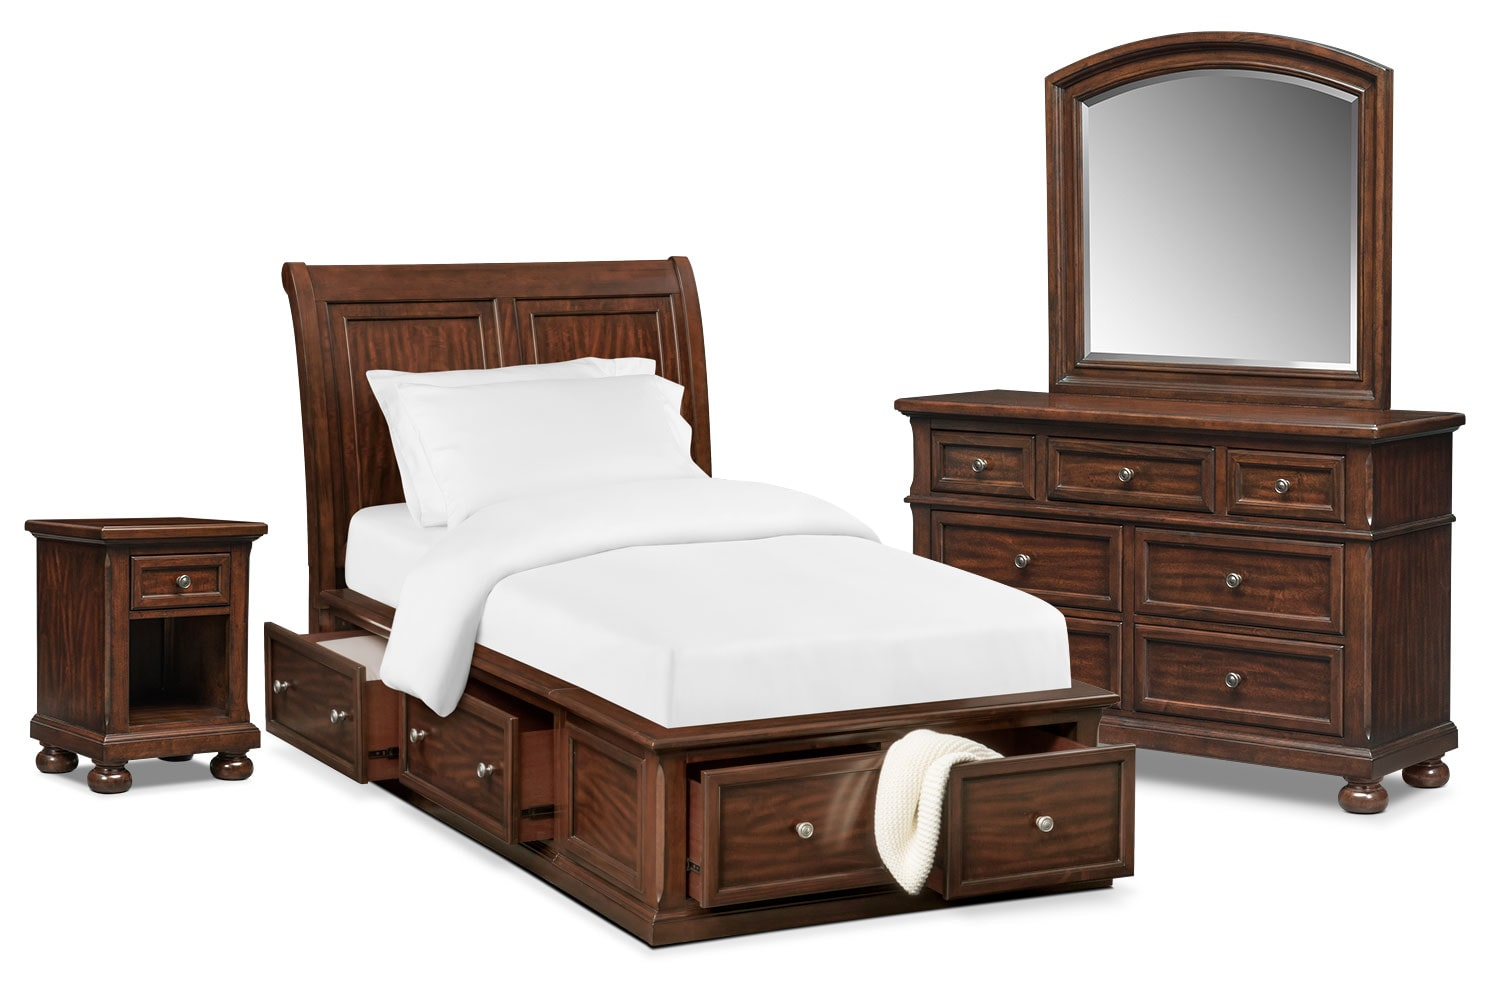 Hanover youth piece full sleigh bedroom set with storage